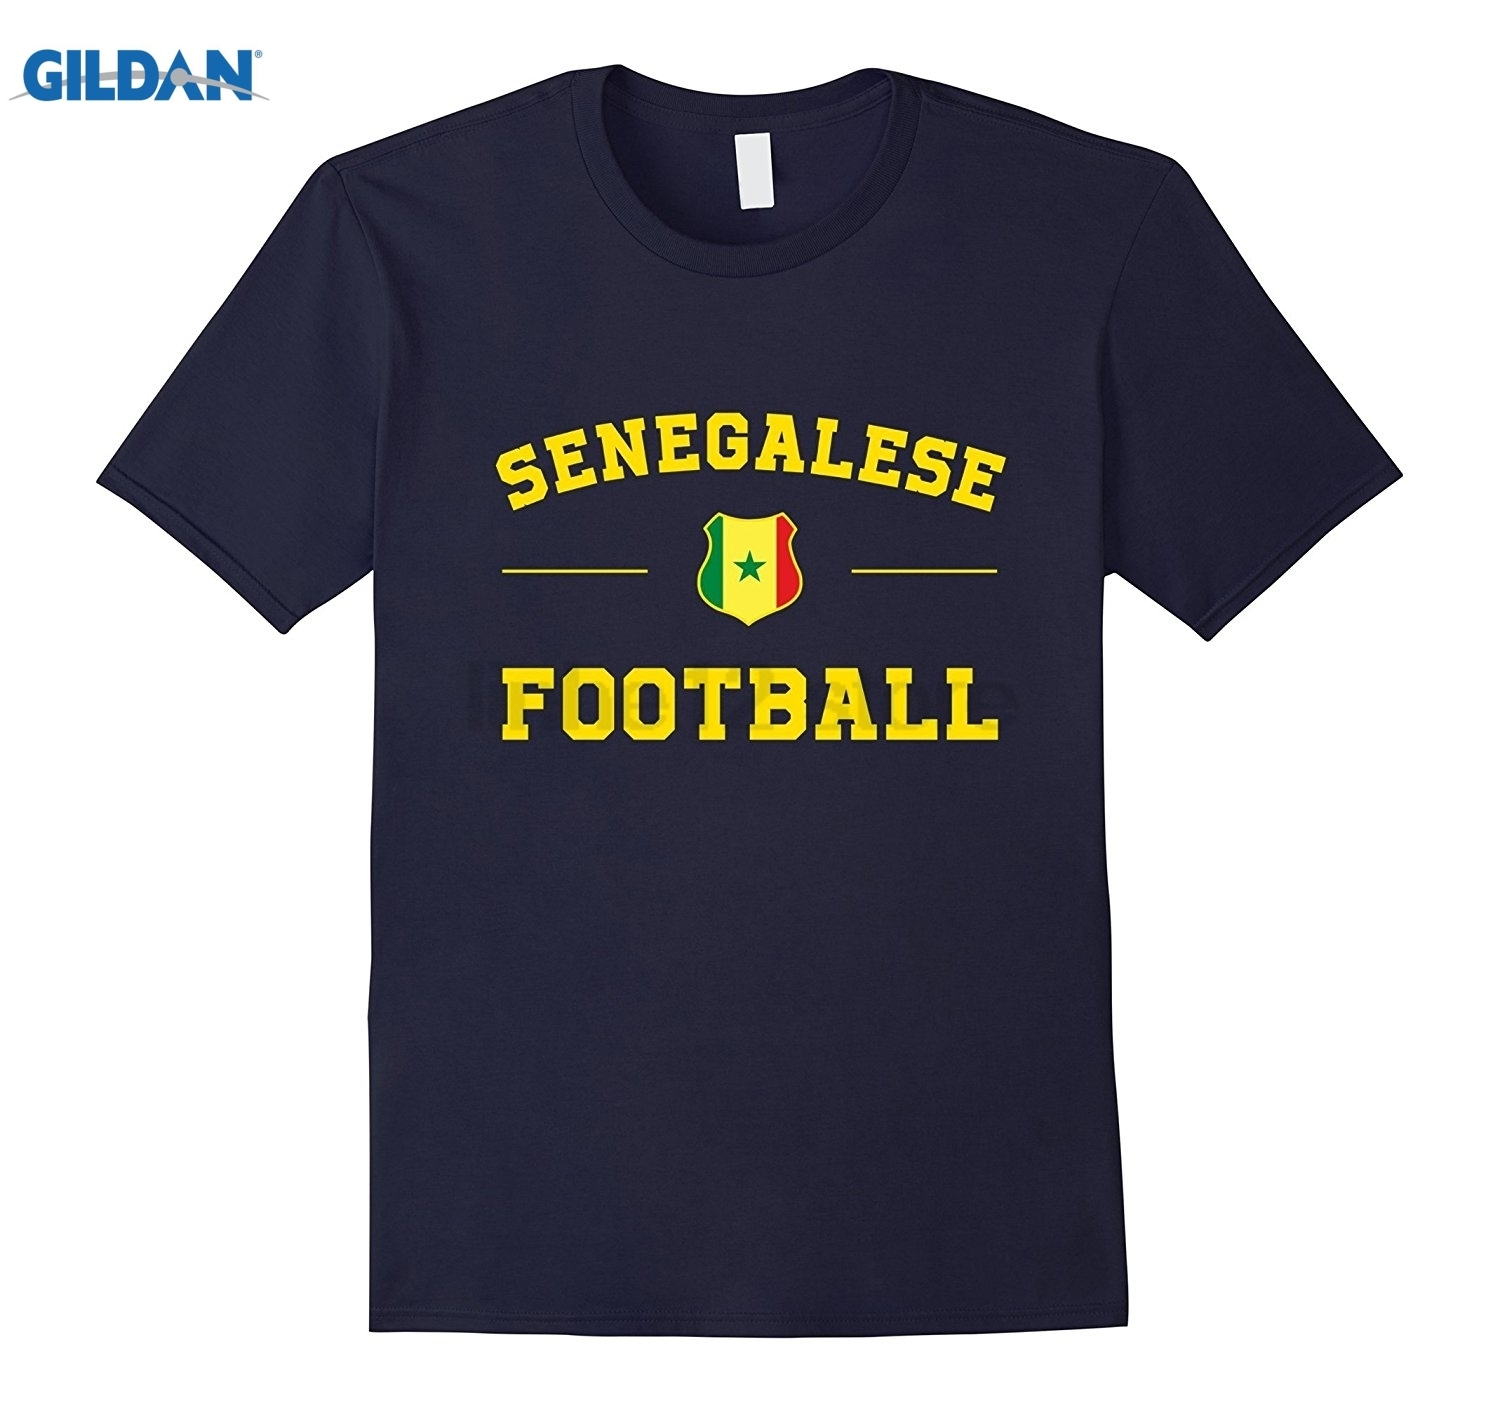 GILDAN Senegal Shirt - Senegal Jersey Womens T-shirt ...